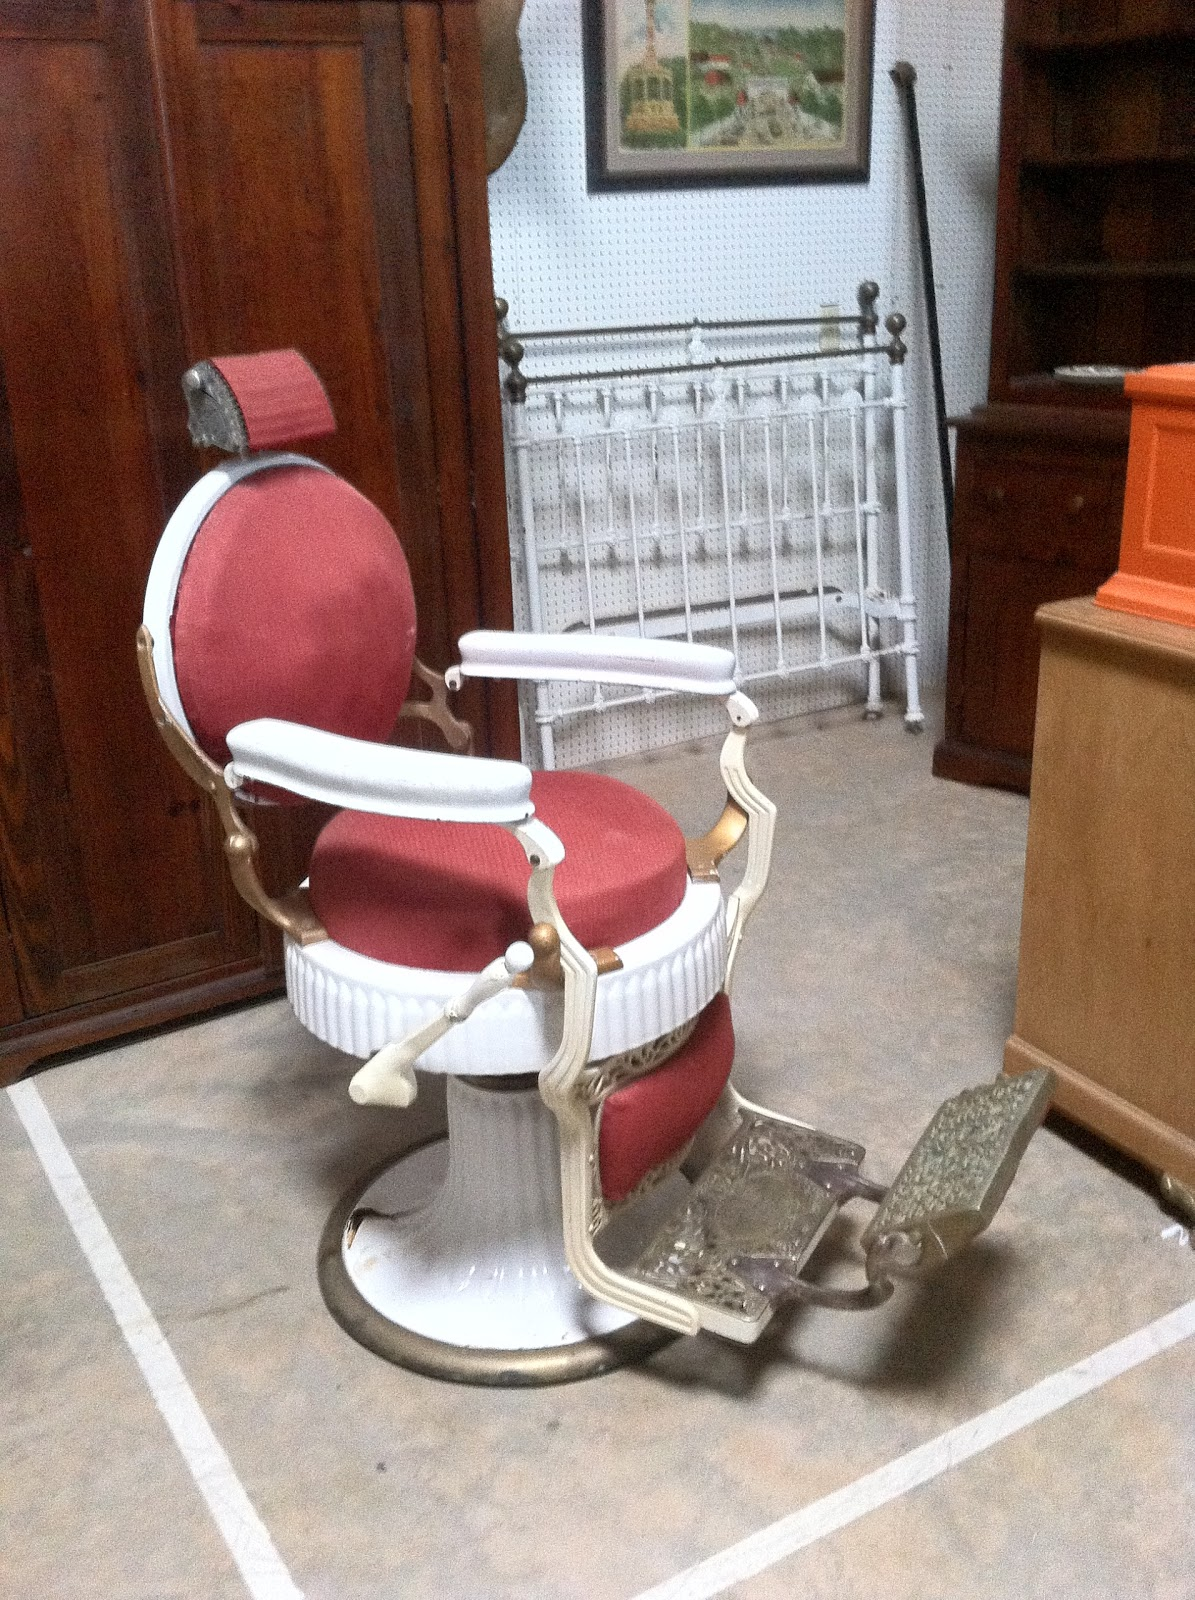 Old Barber Chairs Replacement Chair Slings Australia Girl Photos มถนายน 2013